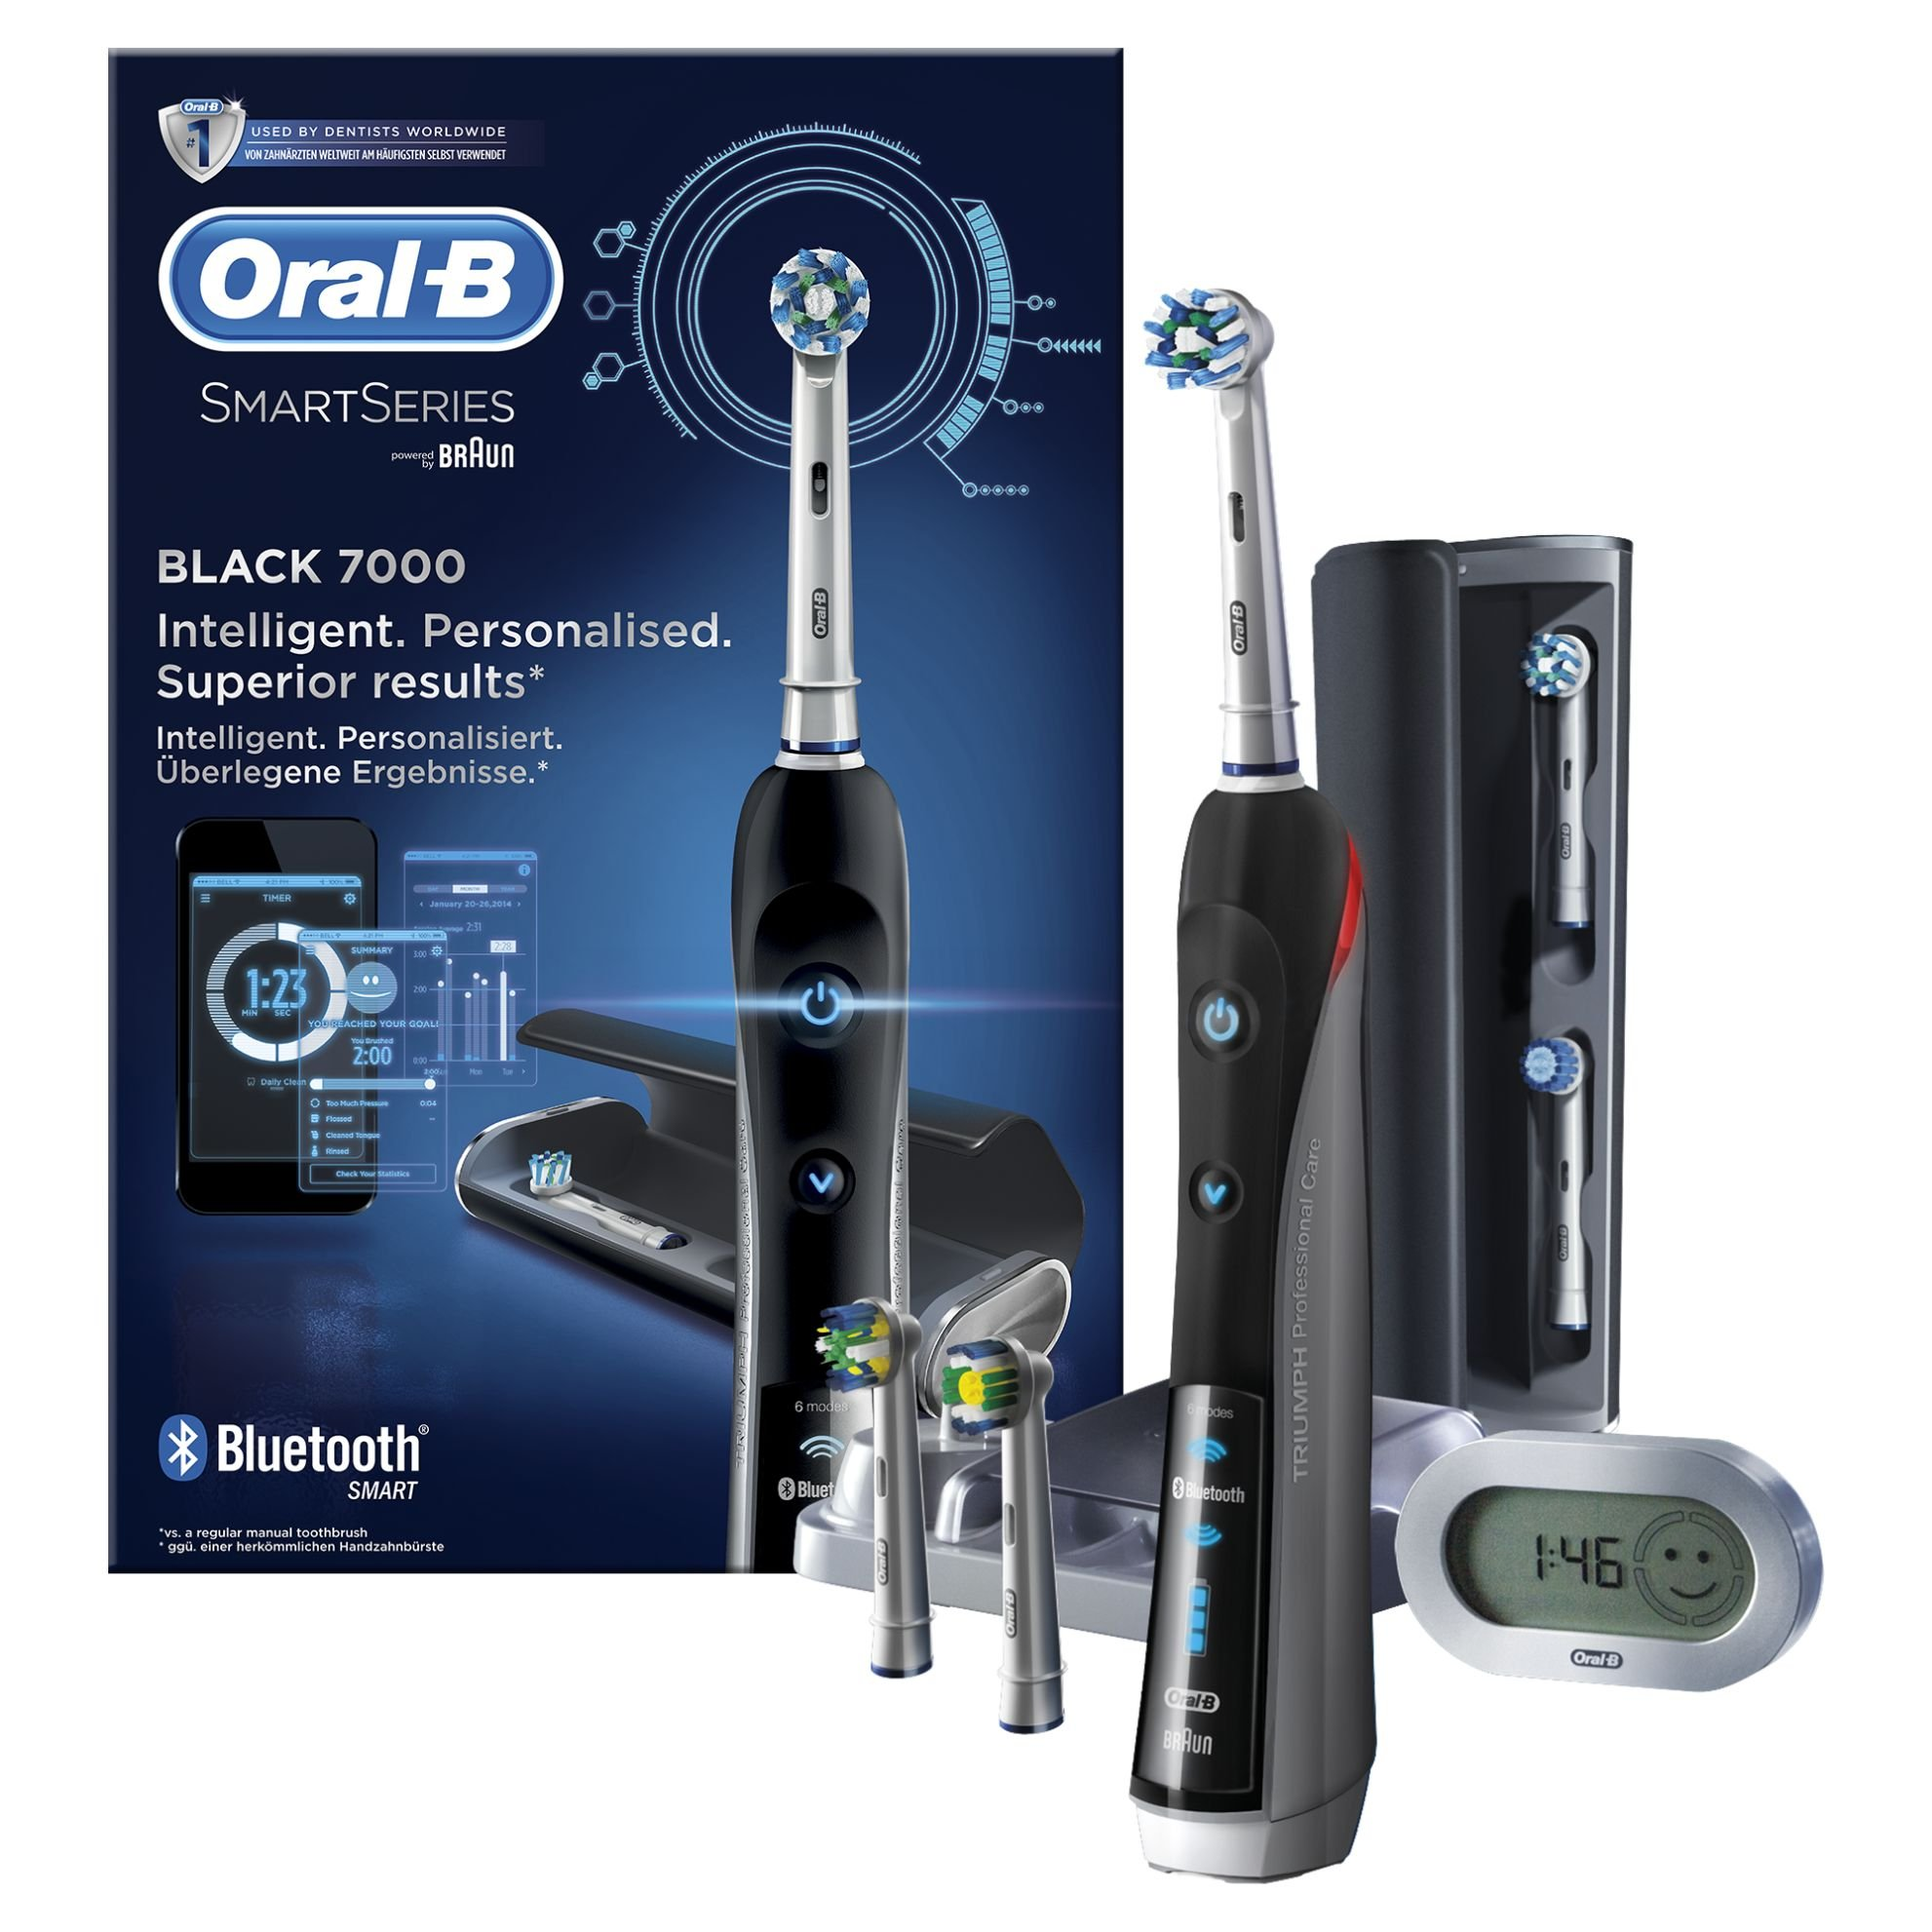 Oral-B PRO 7000 CrossAction Smart Series Cepillo de Dientes Eléctrico Recargable con Conectividad Bluetooth